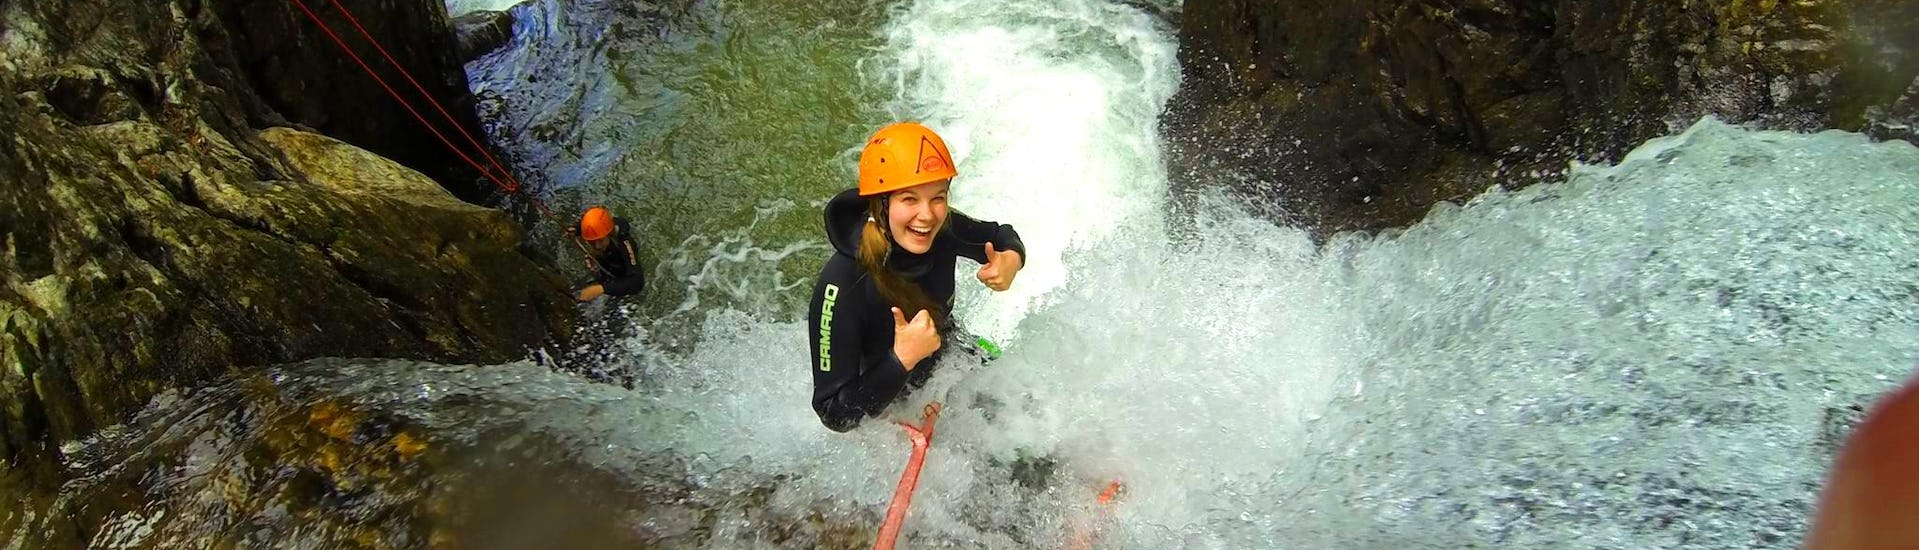 canyoning-for-thrill-seekers-in-the-auerklamm-manitou-tour-wiggi-rafting-hero